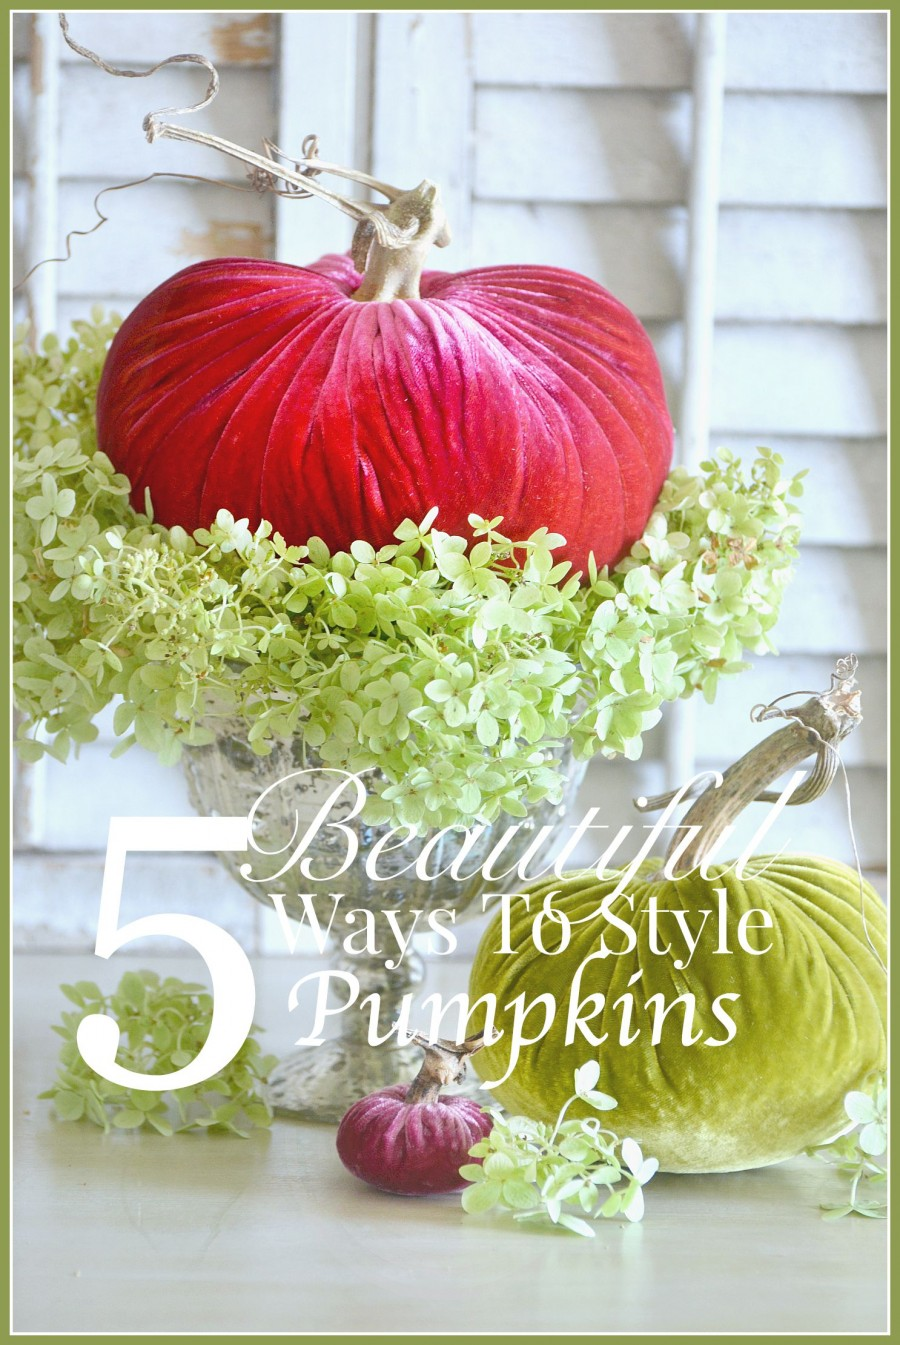 5 BEAUTIFUL WAYS TO STYLE PUMPKINS… AND AN AMAZING PUMPKIN GIVEAWAY